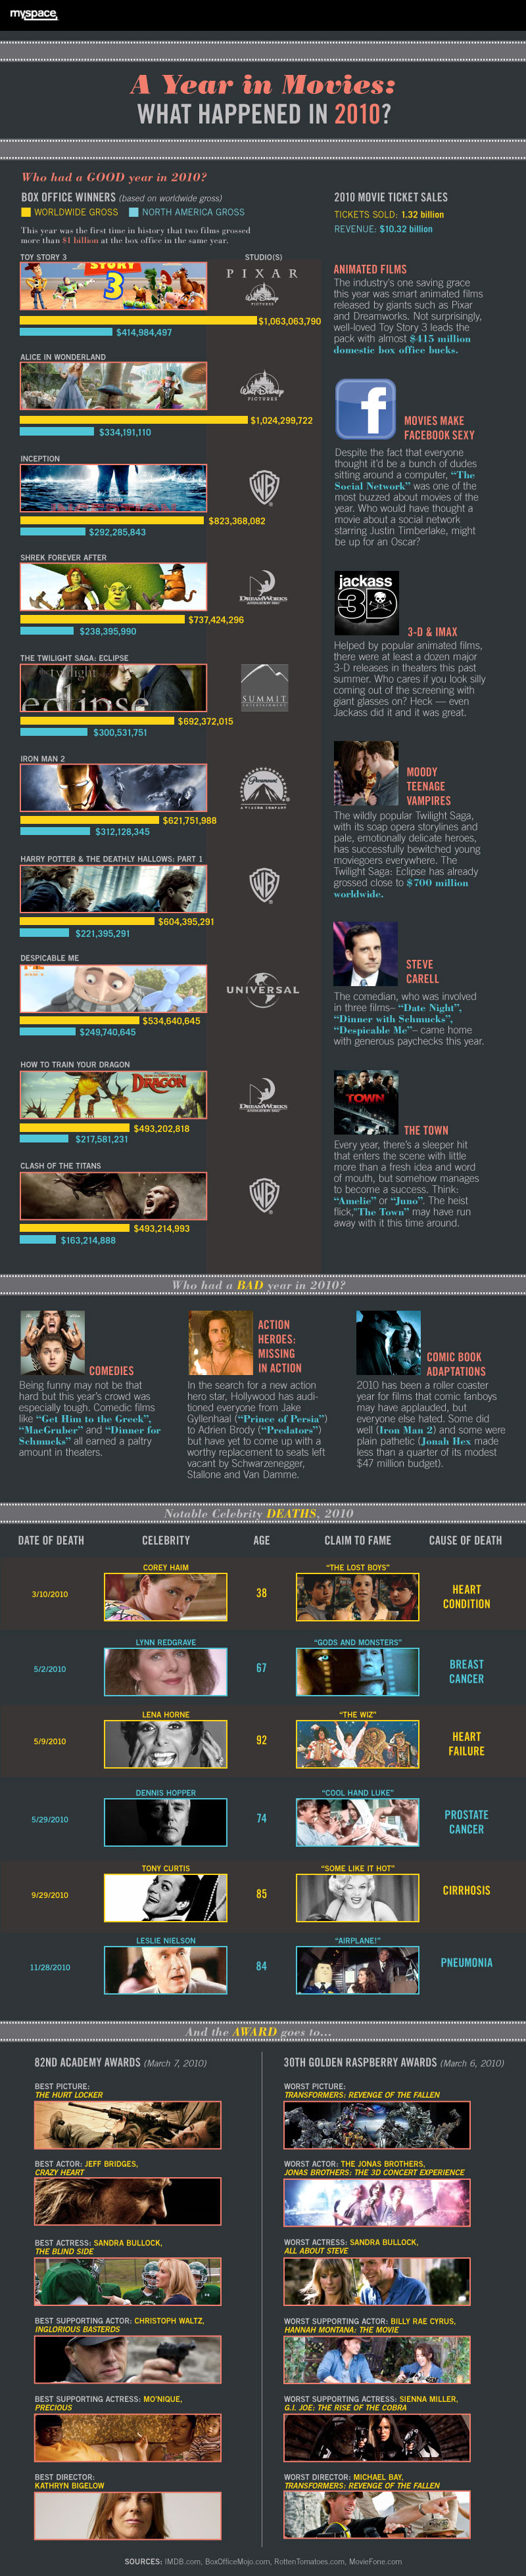 The Facts and Figures of 2010 in 30 Amazing Infographics